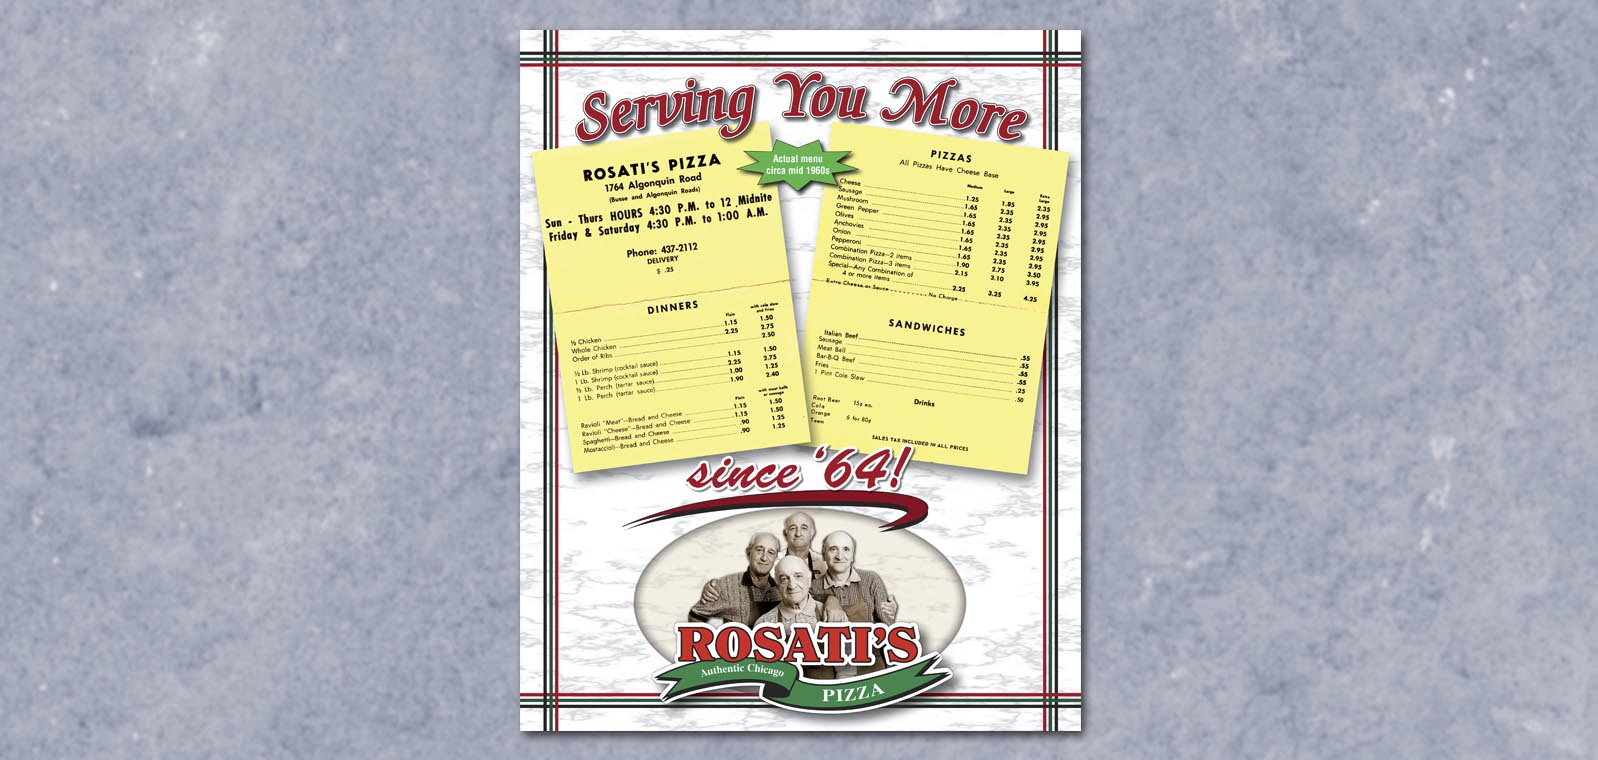 Poster Graphic Design for Rosati's Pizza, by Roselle Graphic Designer Controlled Color, Inc.